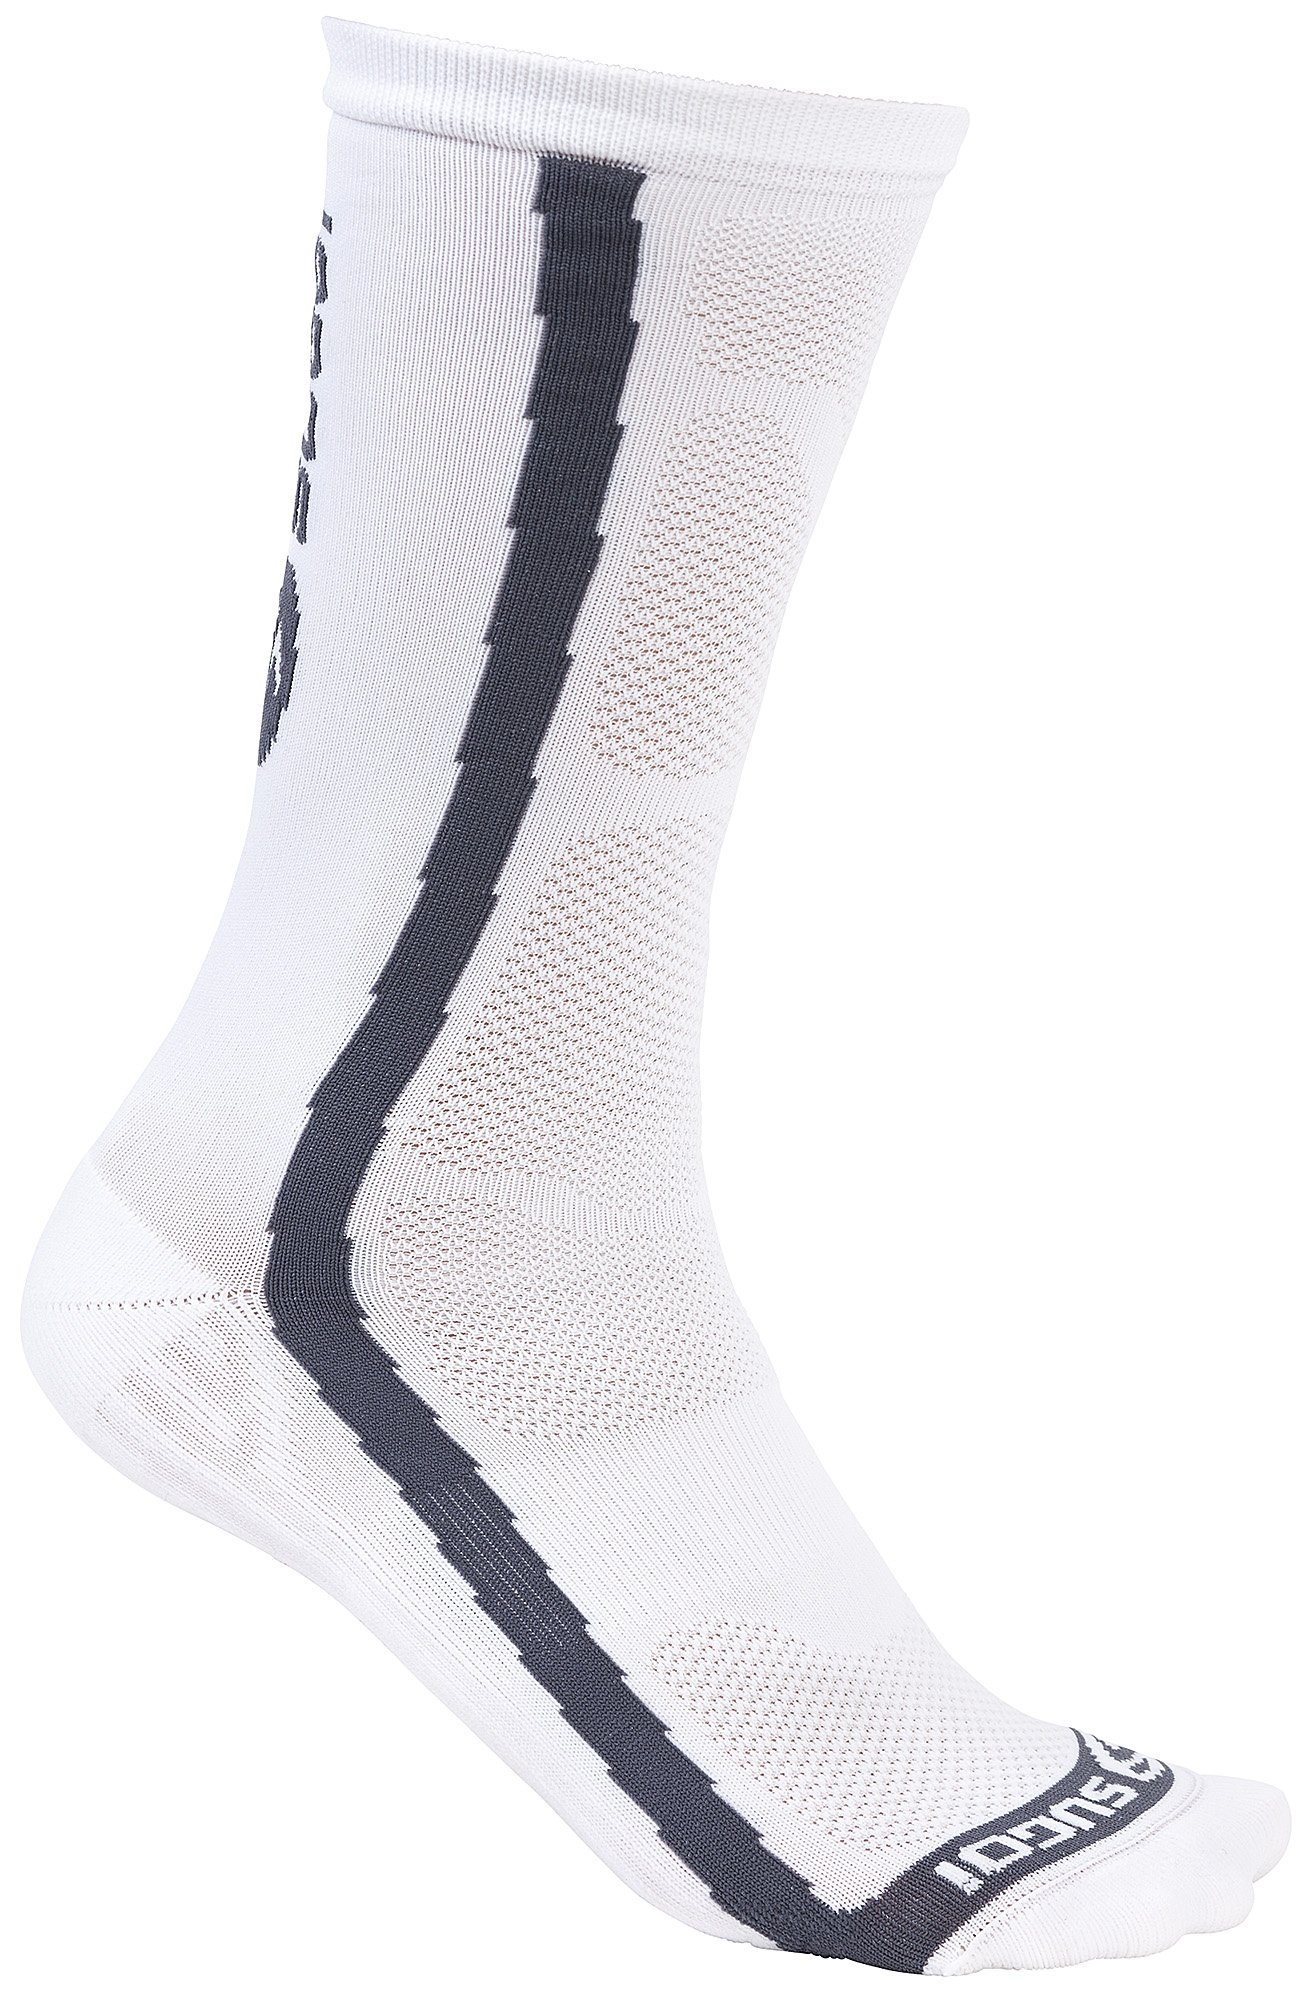 Sugoi RS Crew Socks, White, Large by SUGOi